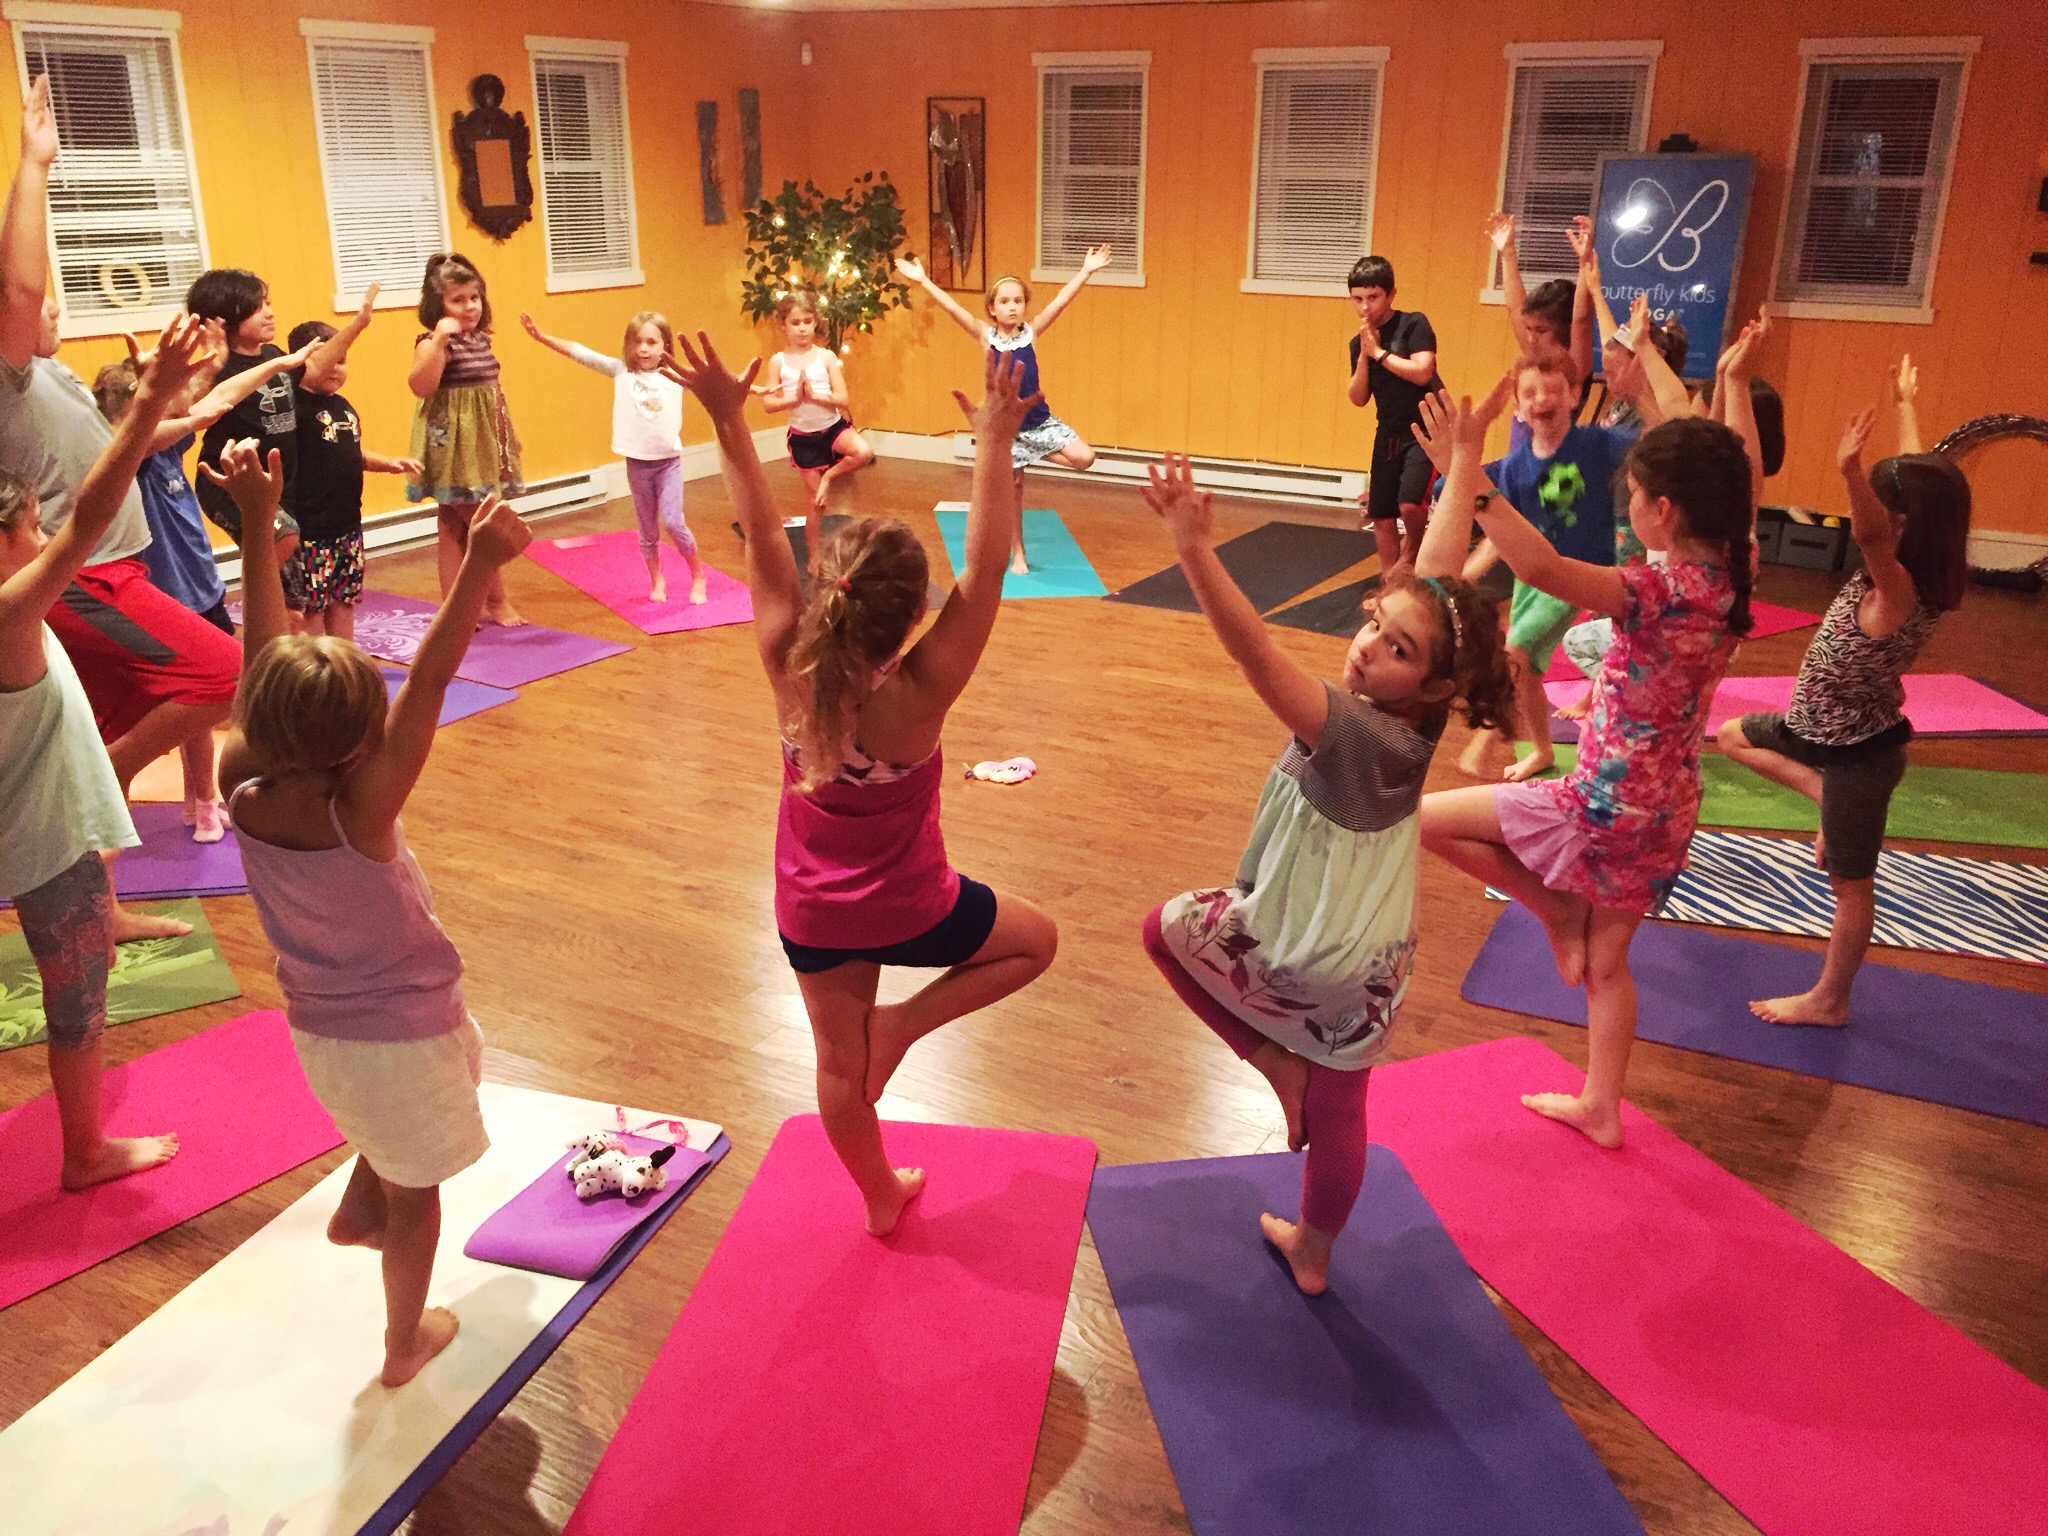 Awesome  Friday Night Kids Yoga Club  this past week! Thanks to all who came. Our next event is coming up on  Friday, October 19th  — hope to see you at the Club!